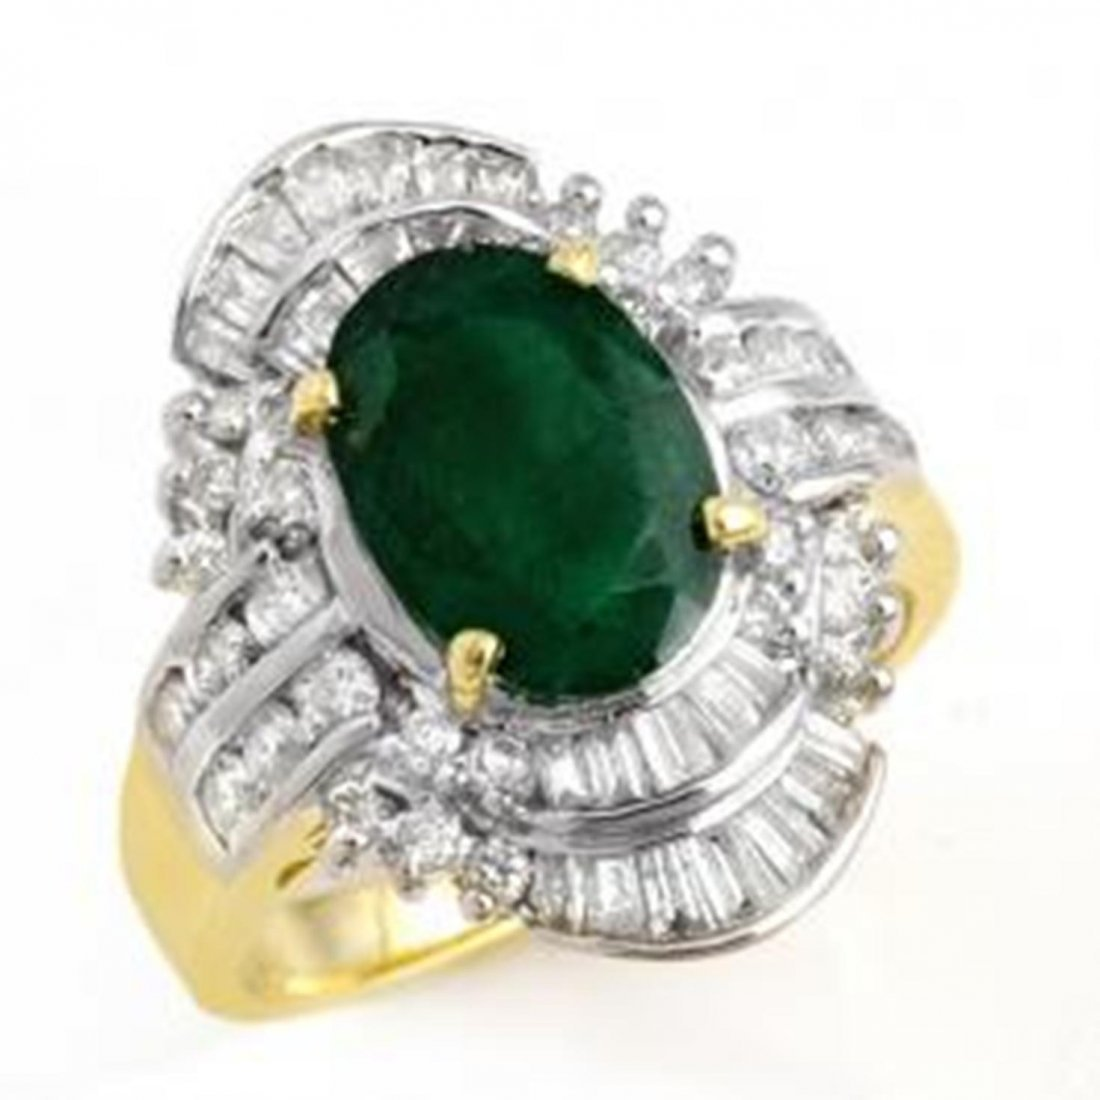 4W: 3.45 ctw Emerald & Diamond Ring 14K